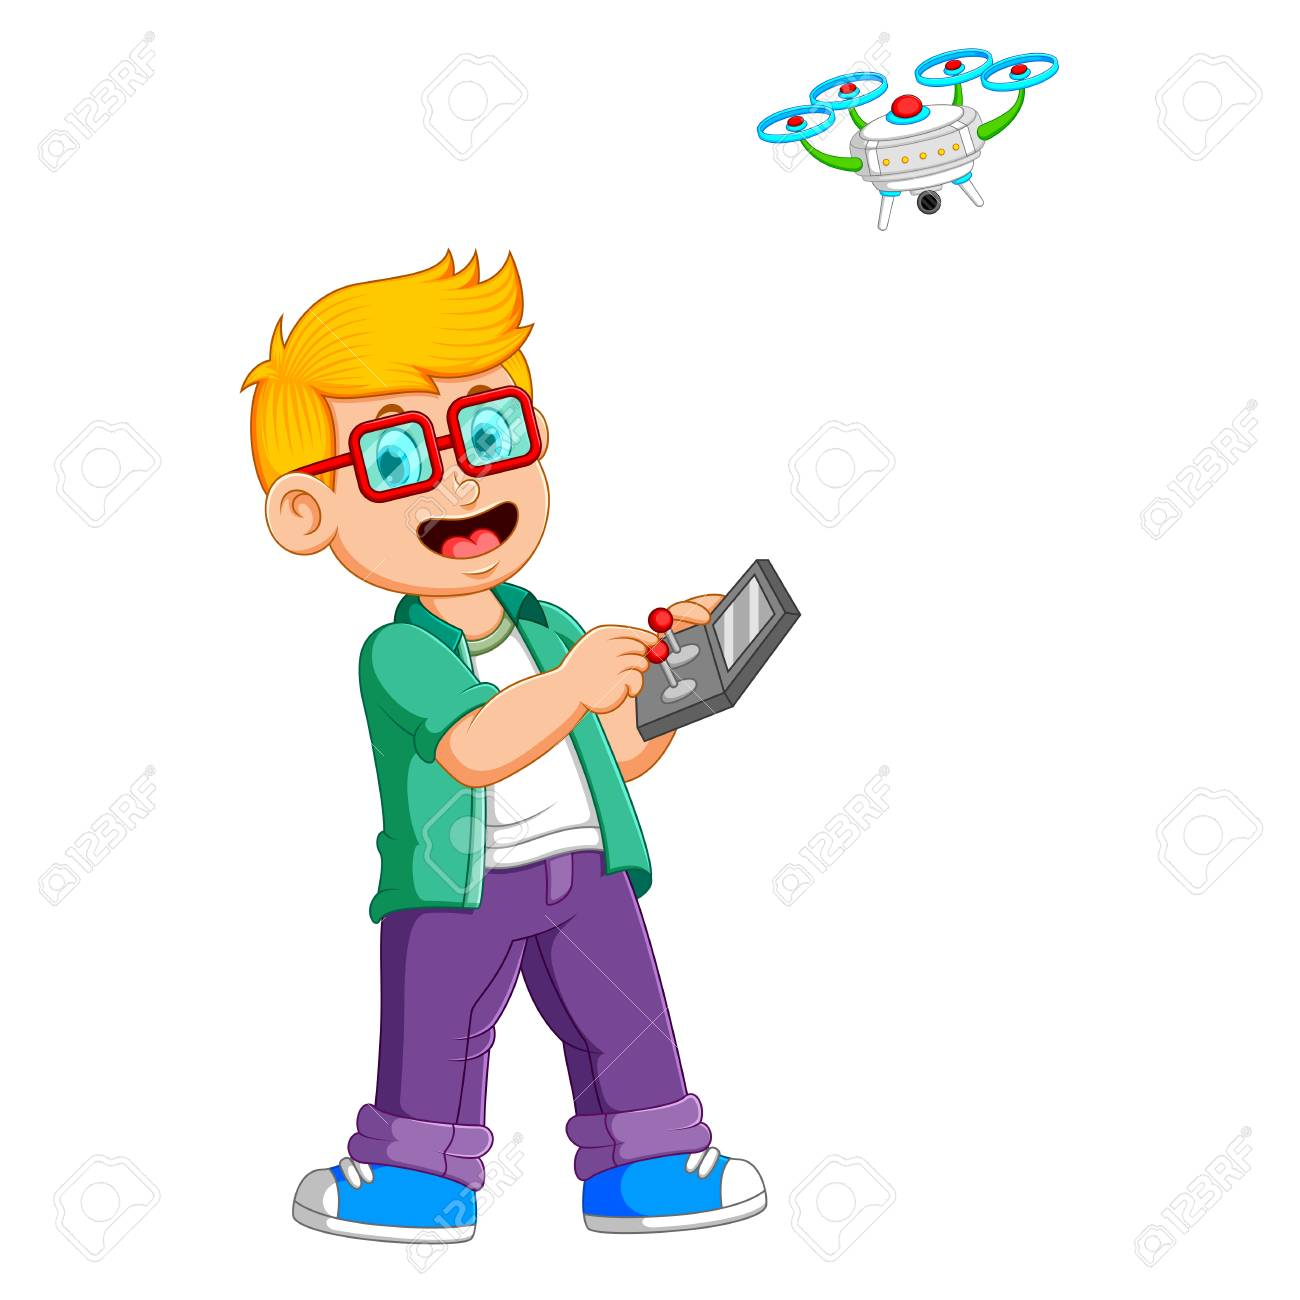 the boy with the glasses is playing with drone - 122855919